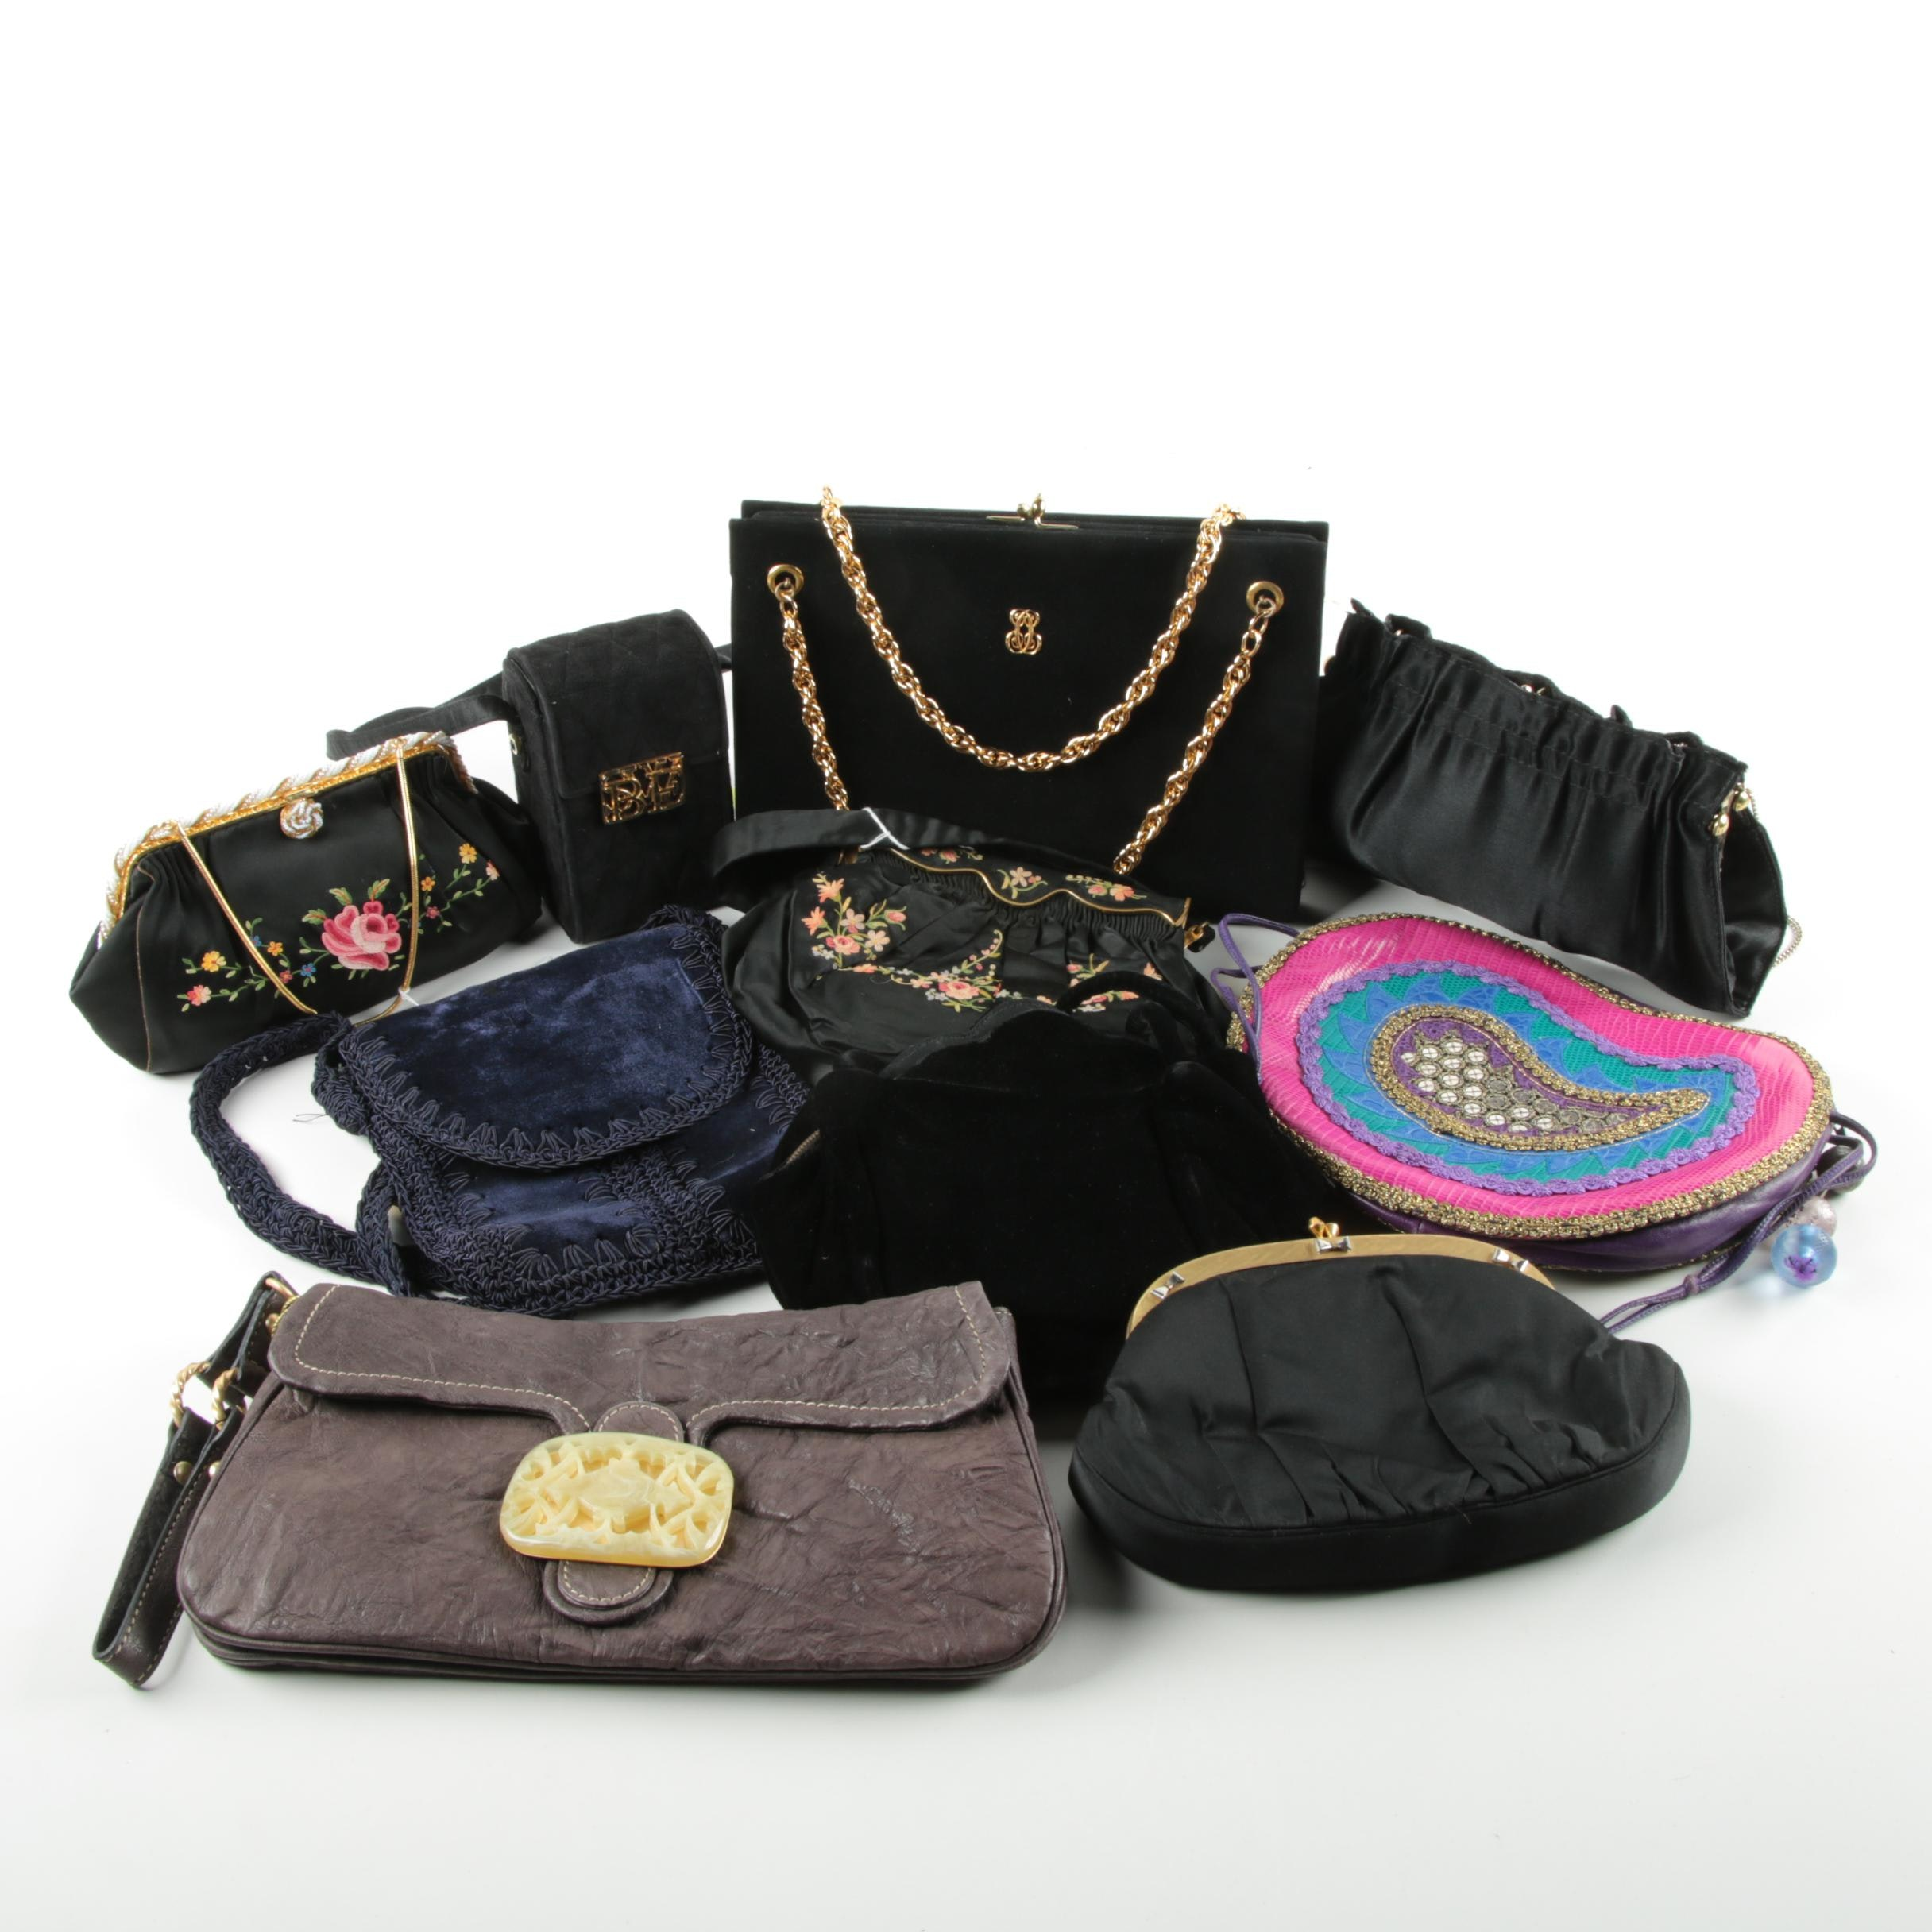 Women's Beaded and Embellished Purses Including Tracy Reese New York and Vintage